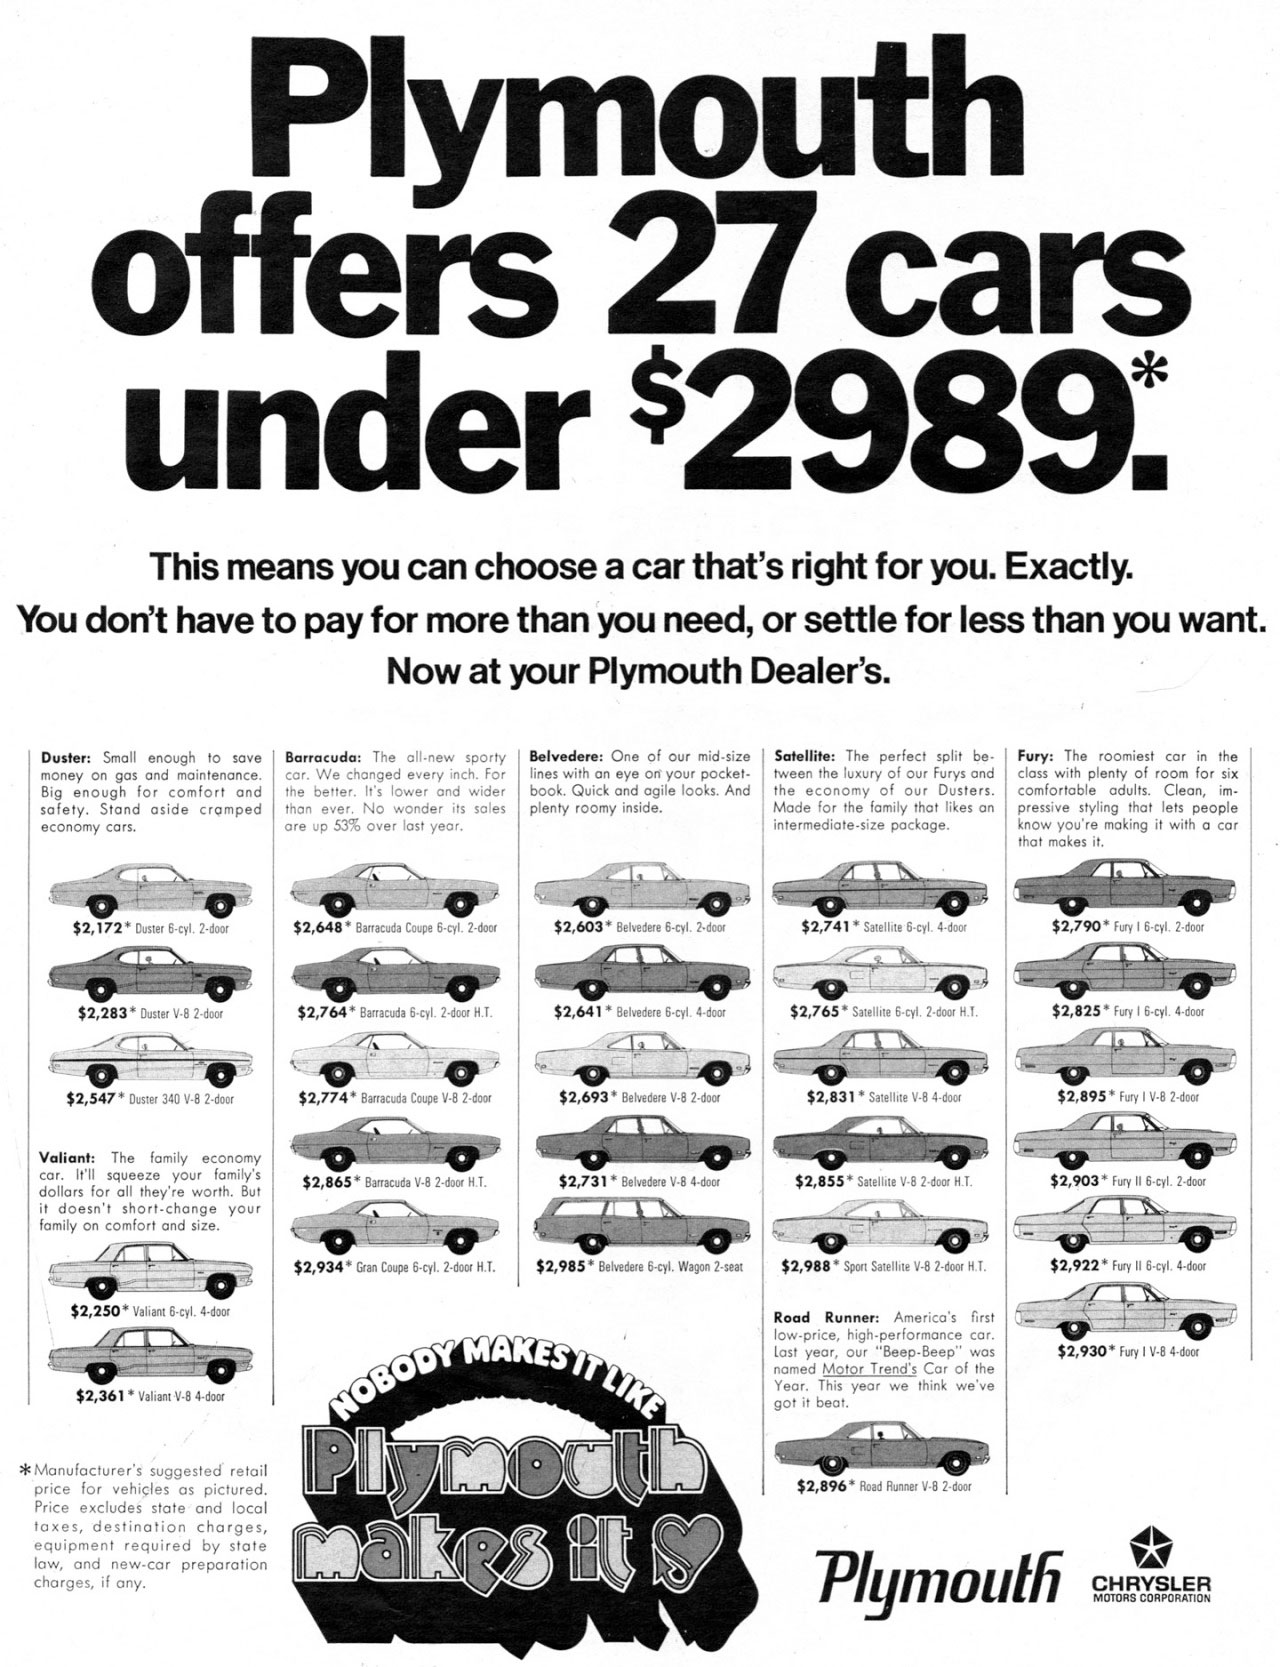 Plymouth offers 27 cars under $2989:  This means you can choose a car that's right for you. Exactly. You don't have to pay for more than you need, or settle for less than you want. Now at your Plymouth Dealer's.  Duster: Small enough to save money on gas and maintenance. Big enough for comfort and safety. Stood aside cramped economy cars.  $2,172° Dow 6-41. 2-door $2,283* Ouster 0.8 2-door  $2,547. Duster 340 V.8 2-door  Valiant: The family economy car. It'll squeeze your fomily's dollars for oll they're worth. But it doesn't short-change your family on comfort and size.  $2,250* Valiant 6,1. 4.door  $2,361* valiant. 4-door  *Manufacturer's suggested recoil price for vehicles as pictured. Price excludes stole and locol taxes, destination charges, equipment required by state low, and new-car preparation charges, if any.  Barracuda: The all-new sporty car. We changed every inch. For the better. It's lower and wider thou ever. No wonder its soles ore up 53% over lost yeor.  $2,648* Barracuda Coupe 6.cyt. 2.. 41101111/eP $2,764. Barracuda 6.cyl. 2-door H.T. $2,774* Barracuda Coupe 0.8 2.doa  $2,865 Barracuda 0-8 2-044041.  $2,934* Gran Coupe 6,1. 2-door H.T.  Belvedere: One of our mid-size lines with on eye on your pocket-book. Quick and agile looks. And plenty roomy inside.  widiates  $2,603* Belvedere ma   $2,641. Belvedere 6.cyl. 4-does  MIPMiti#71717,  $2,693* Belvedere 0.8 2-doa 111611111P $2,731* Belvedere 4.door  $2,985* Belvedere 6-cyl. Wagon 2-seat   Satellite: The perfect split be-tween the luxury of our Furys and the economy of our Dusters. Mode for the family shot likes on intermediate-size package.  $2,741. Satellite 6-31. 4-dor  $Z765. Satellite 6.cyl. 2-door N.Y.  41111111  $2,831* Satellite V-8 4-door $2,855* Satellite V.8 2-door H.T.  •,..`41-77a.041177:1,, $2,988* Spat Satellite Y.13 2-door H.T.  Road Runner: America's First low-price, high-performance .r. lost year, our 'Beep-Beep' was named Motor Trend's Cor of the Year. This year we think we've got it beat.  $2,896* Road Runner V-8 2-door  Fury: The roomiest car in the class with plenty of room for six comfortable adults. Clean, im-pressive styling that lets people know you're making it with a .r that makes it.   $2,790* Fury 16-0. 2•door   $2,825. Fury 16-0. 4-door  $2,895° Fury I 0.8 2-door  ....4041PM1111, _  $2,903 Fury II 6.cyl. 2-door  $2,922* Fury II 6.0 4-door  $2,930* For, me 4.663  Plymouth  411. CHRYSLER MOTORS CORPORATION